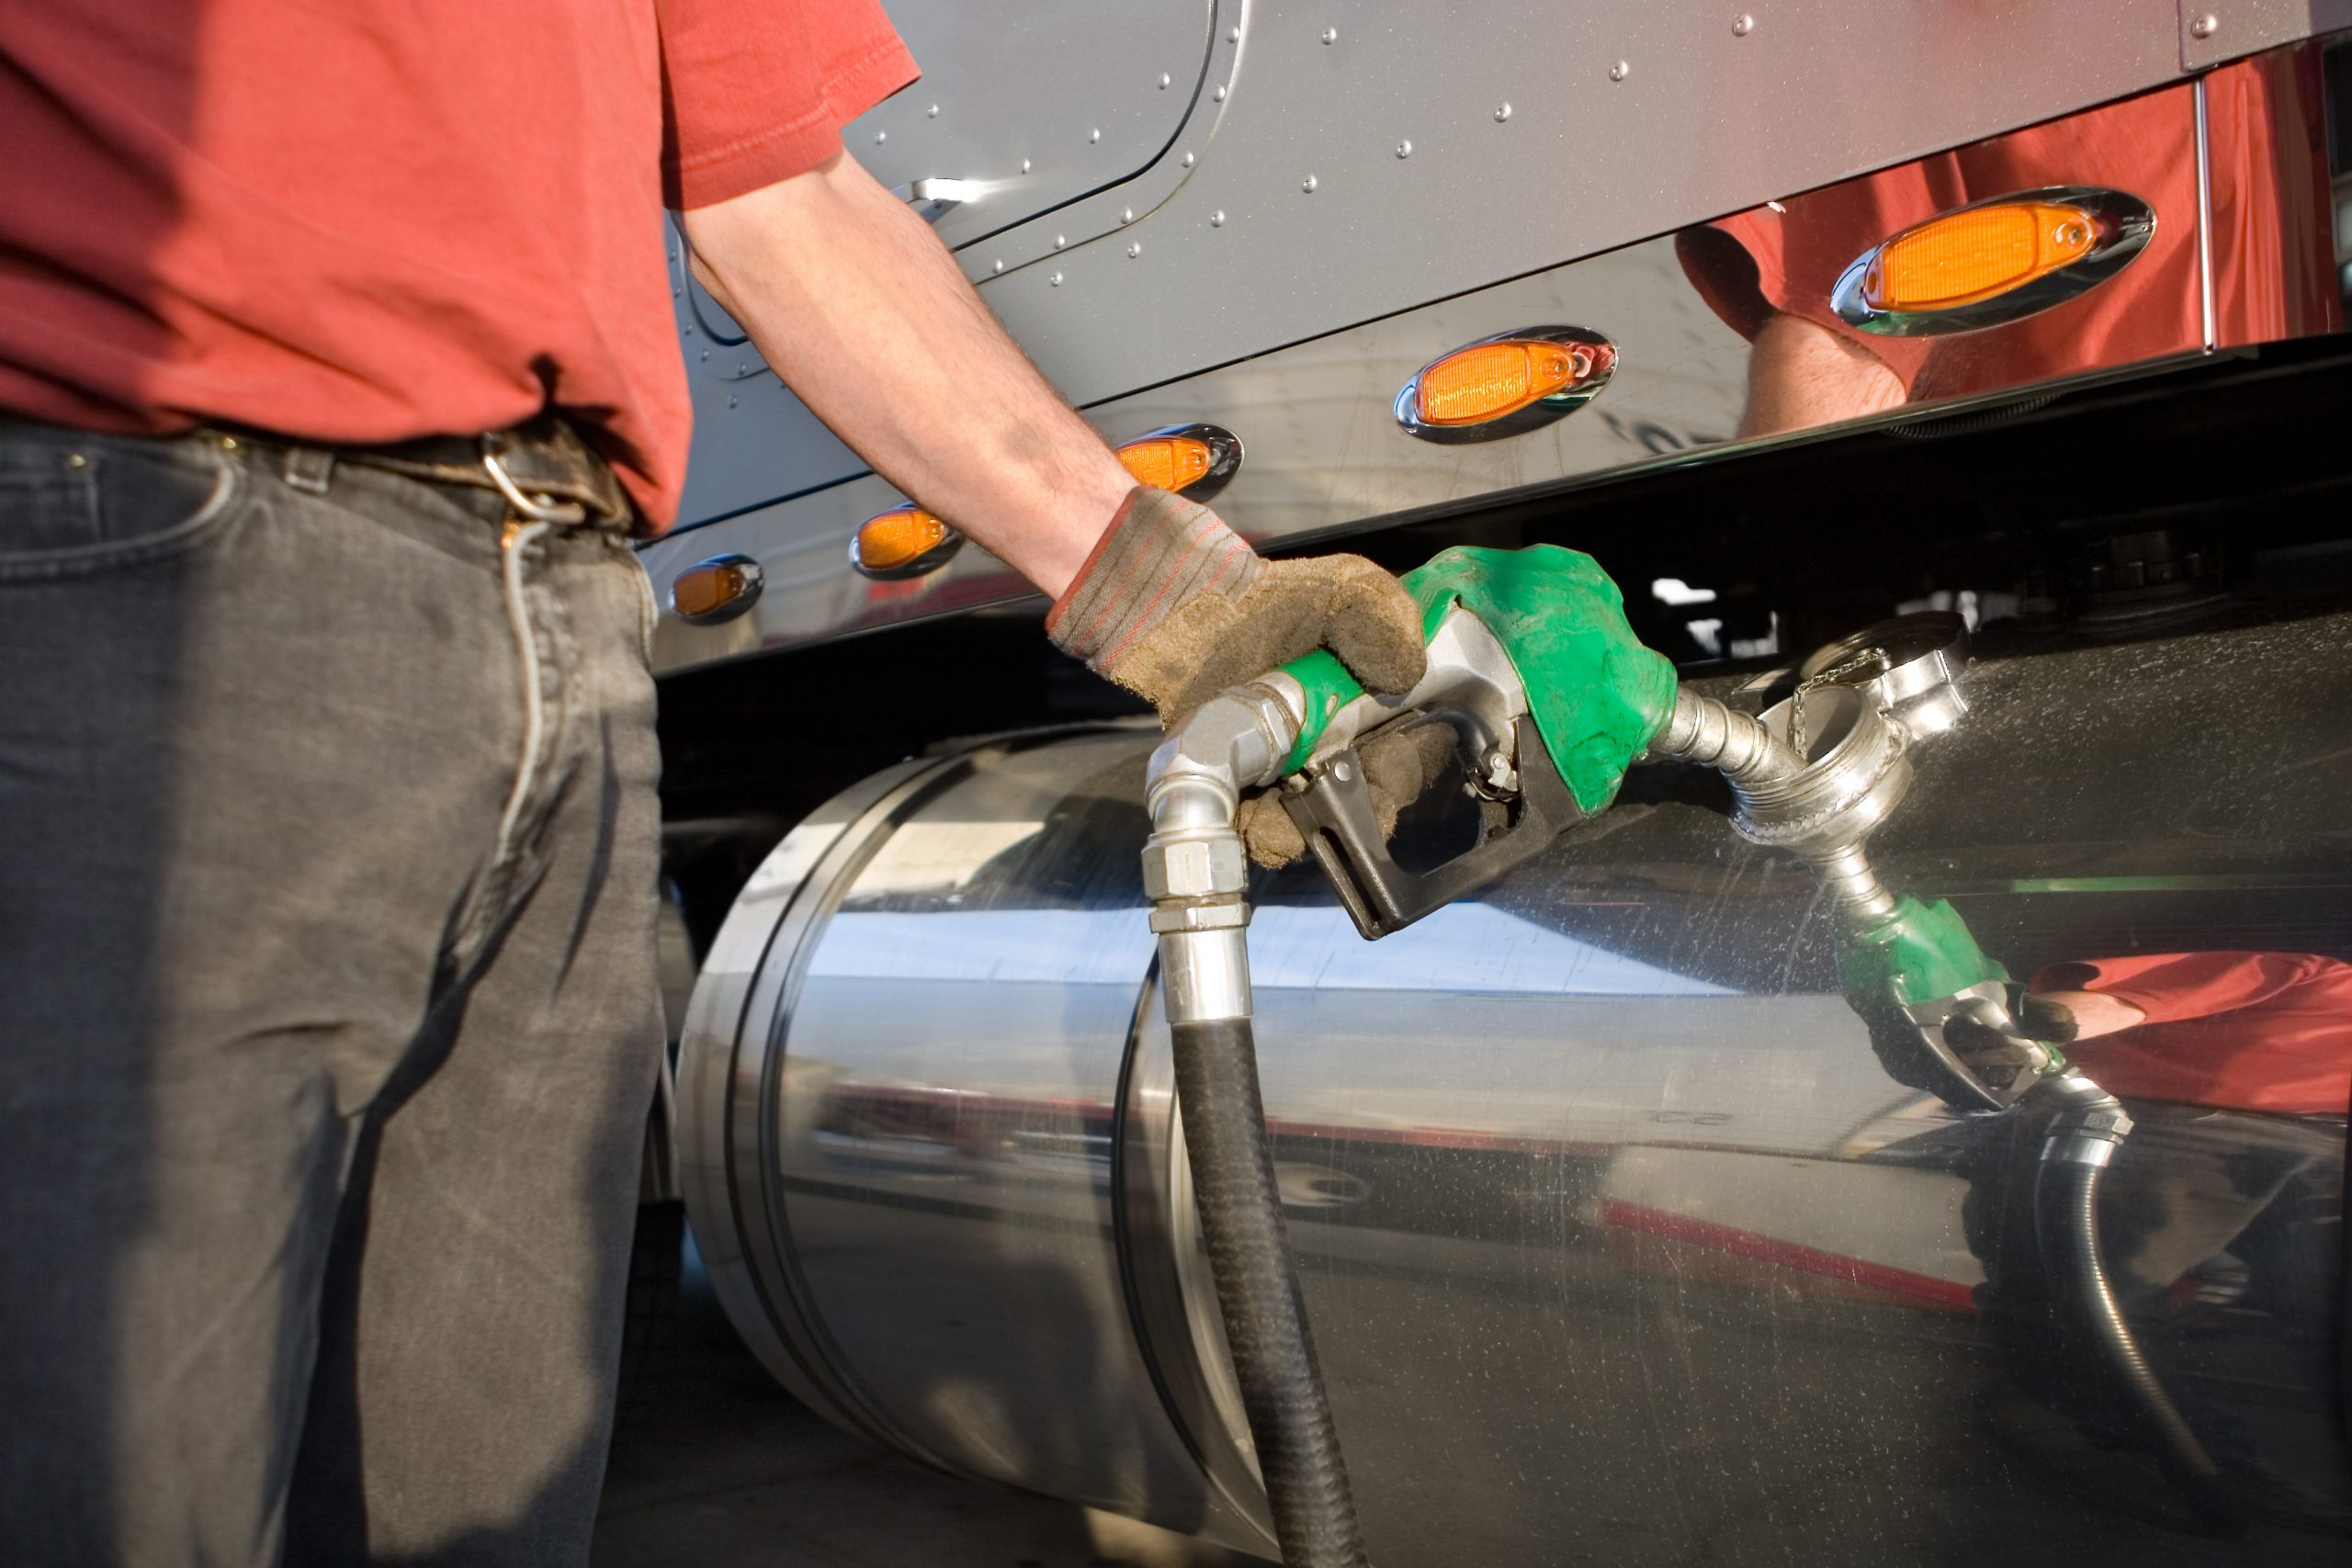 A man fueling a gas tank of a truck